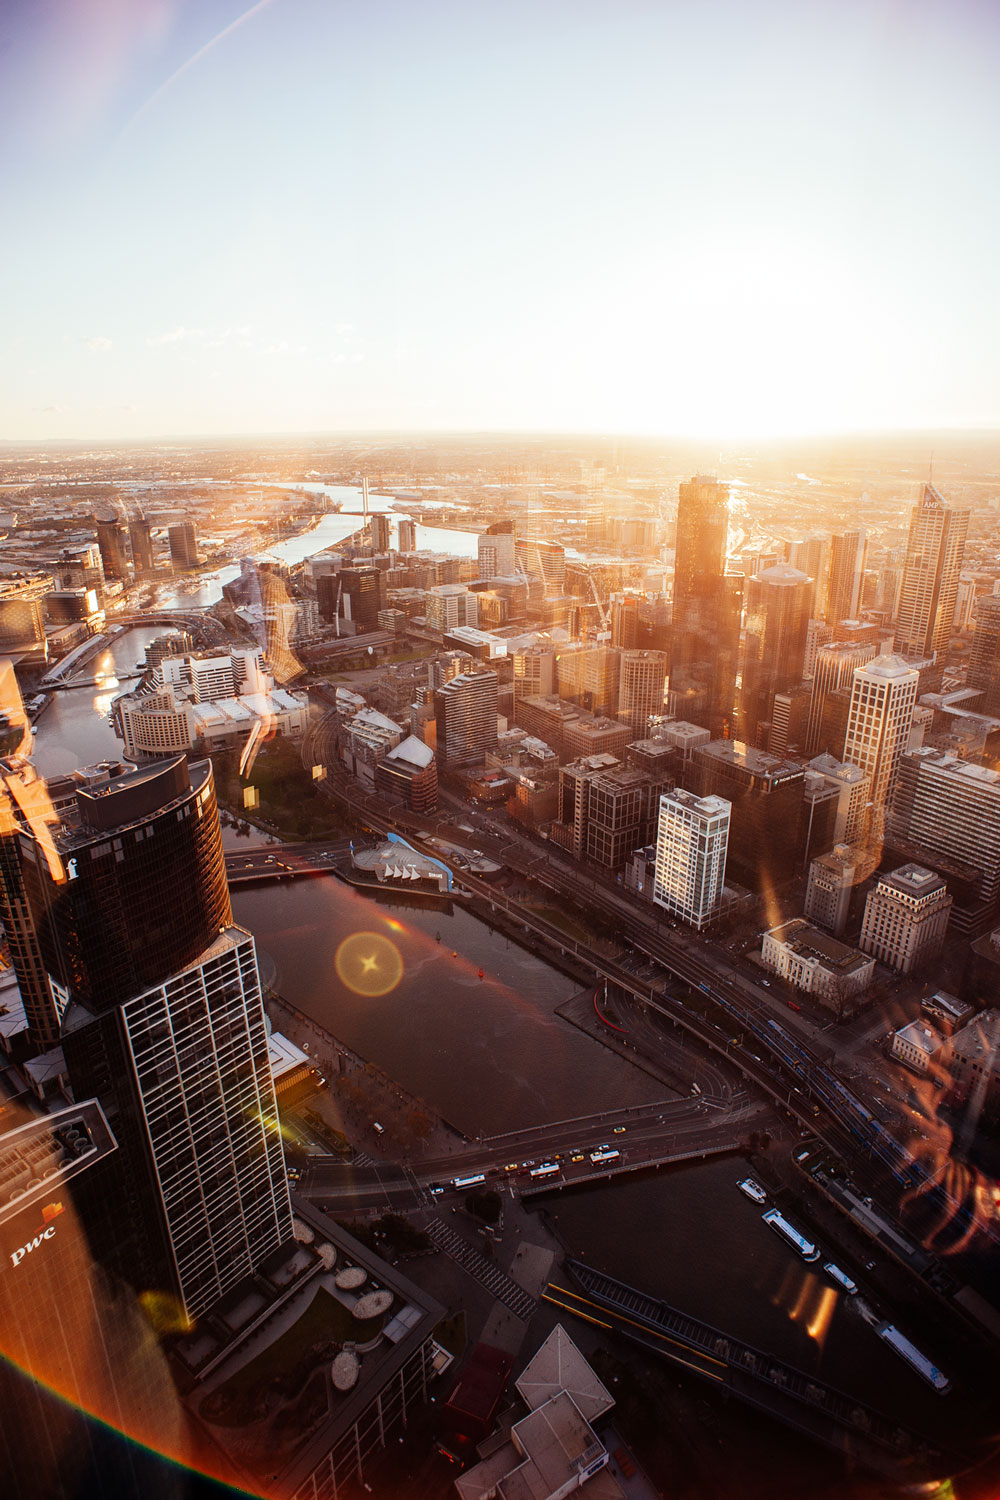 On top of the Eureka Tower, Melbourne